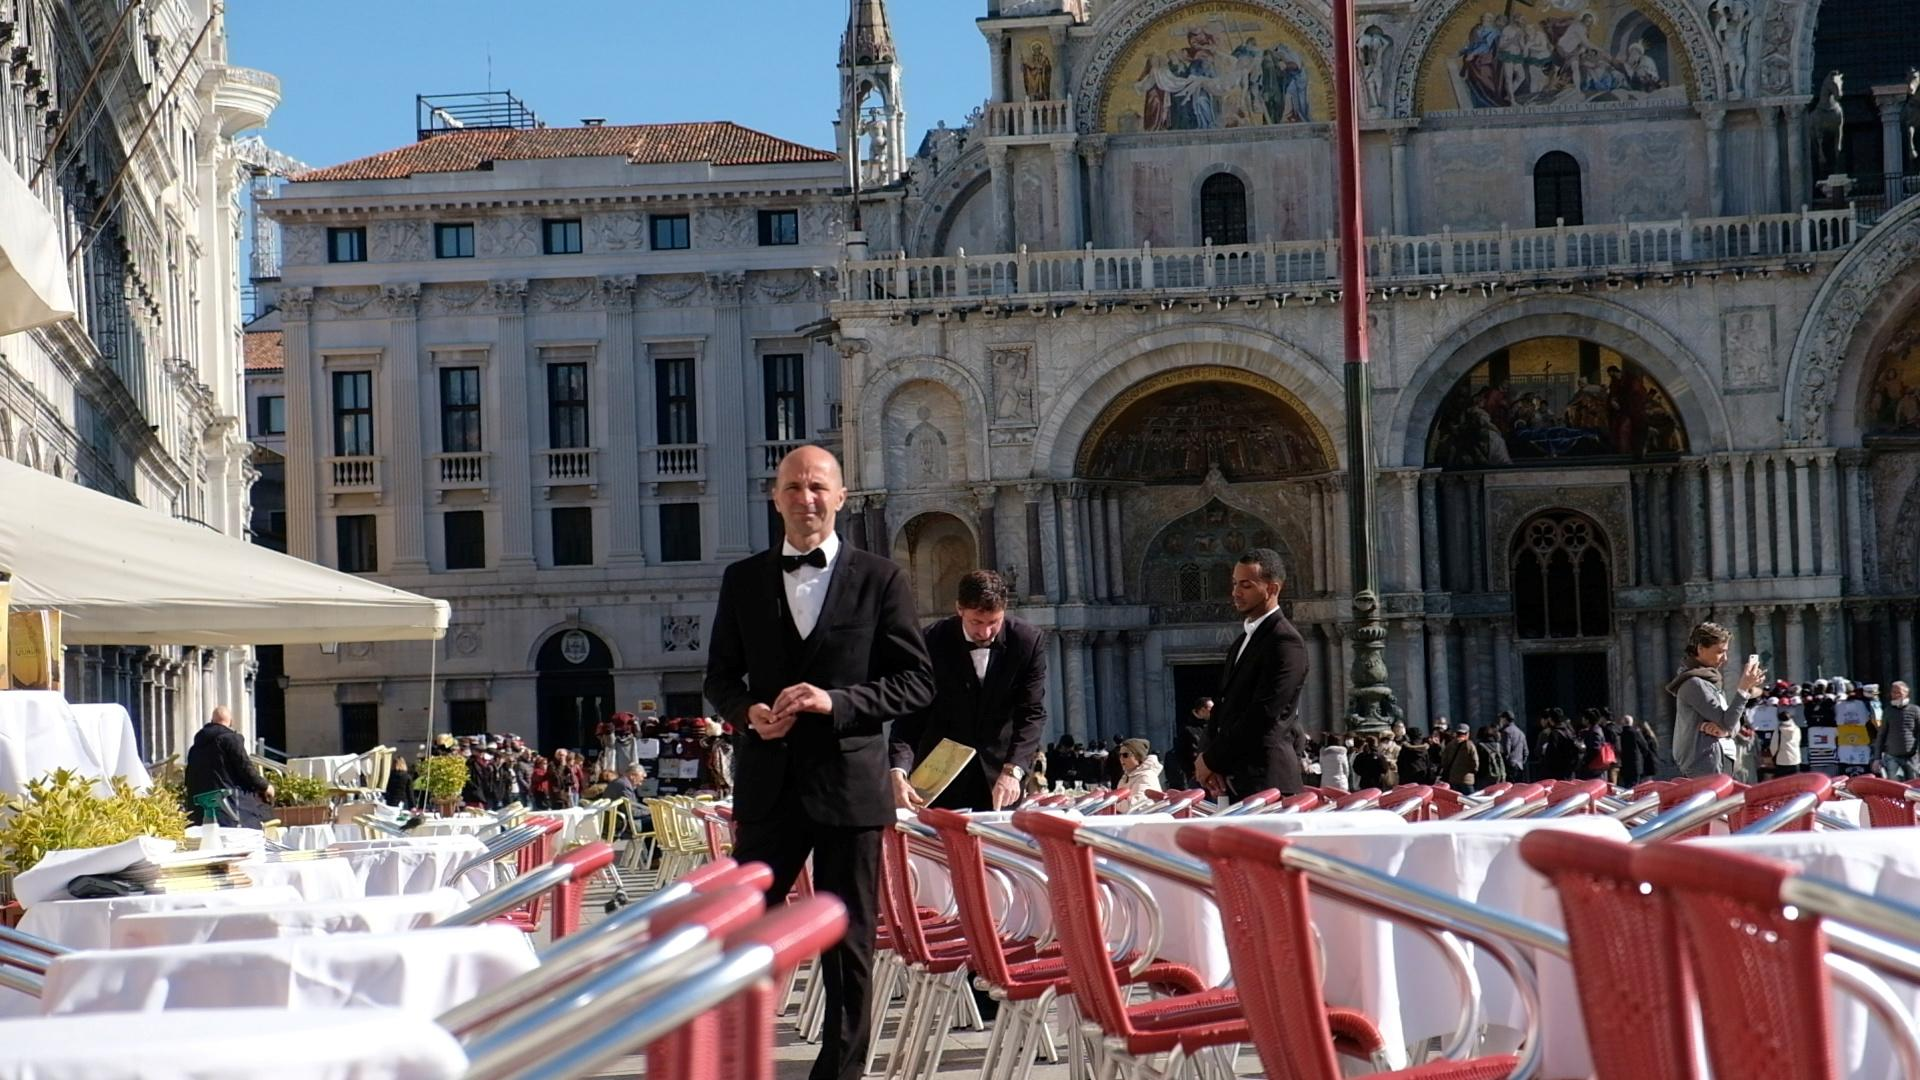 Waiters stand by an empty restaurant in St. Mark's Square, which would usually be full of tourists, as a coronavirus outbreak continues to grow in the country, in Venice, Italy, February 27, 2020. REUTERS/Manuel Silvestri